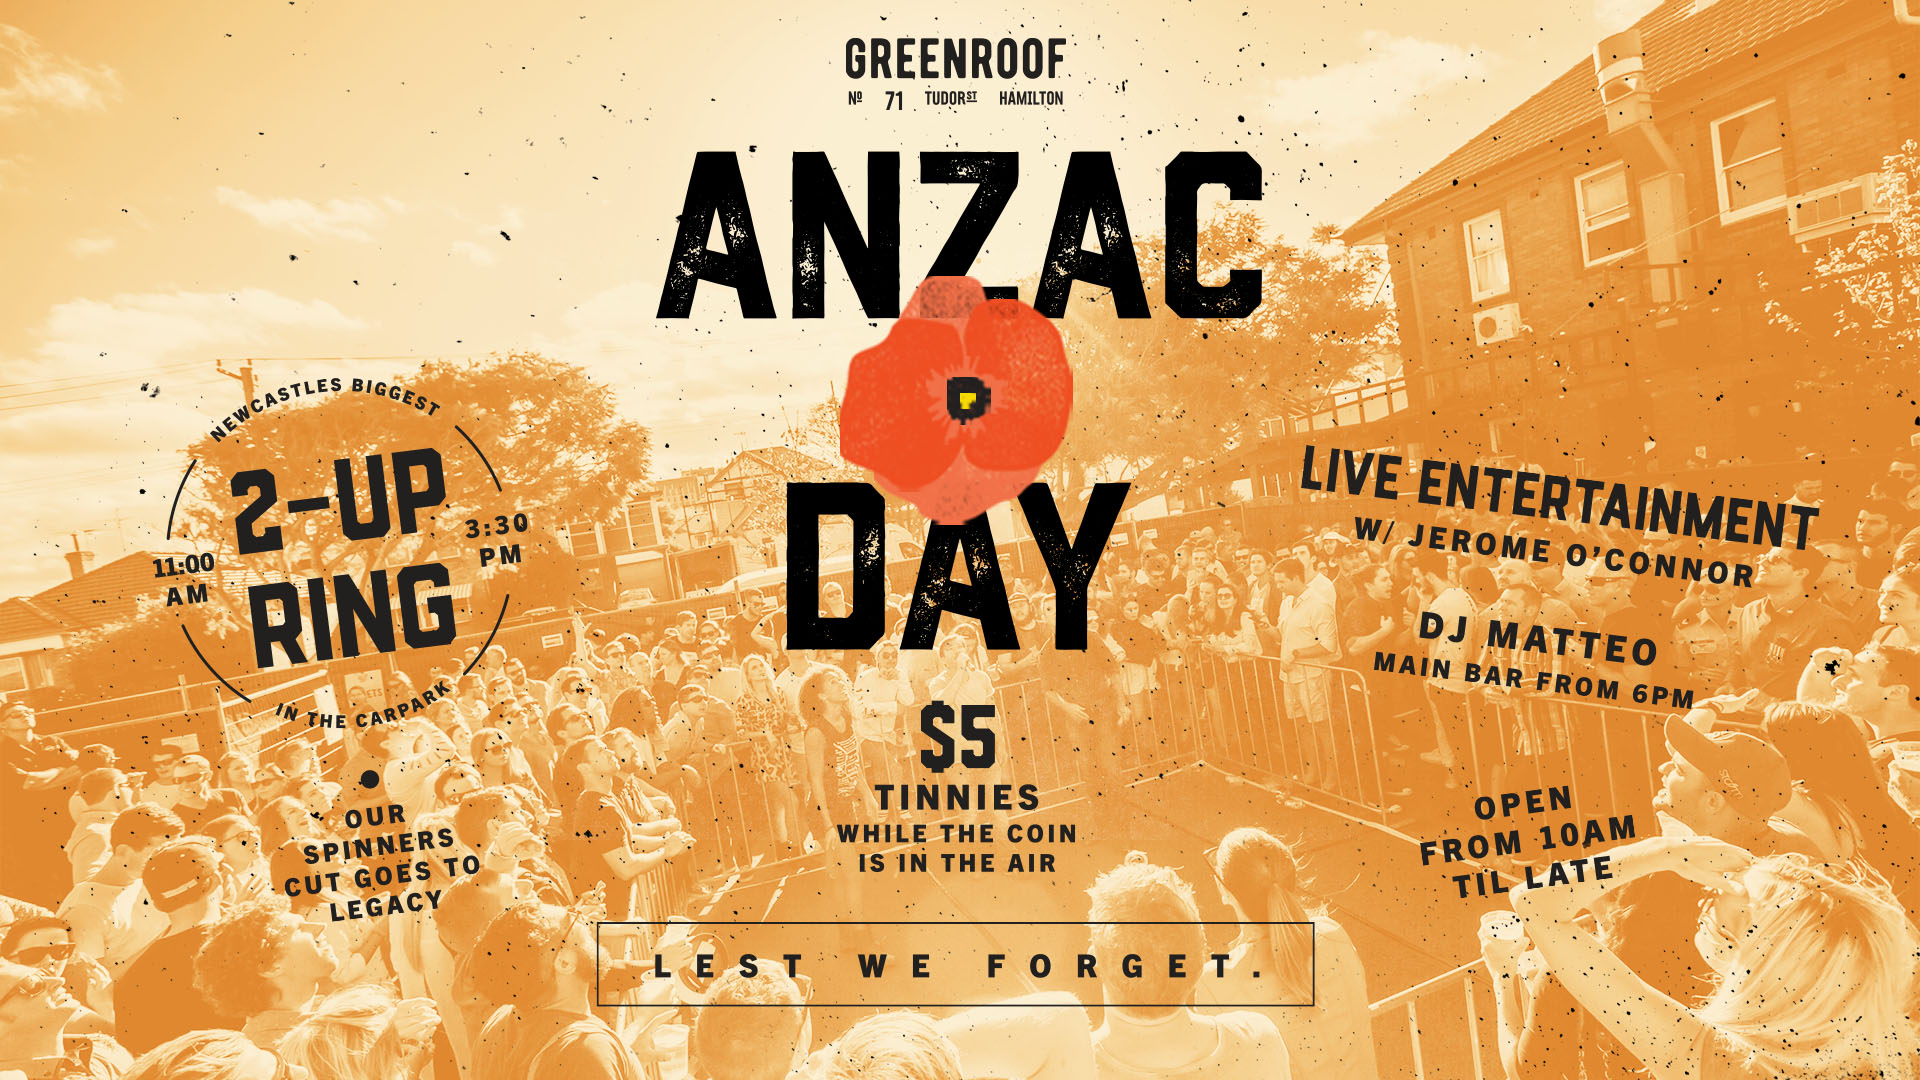 ANZAC DAY at The Greenroof • 2 UP in the Carpark